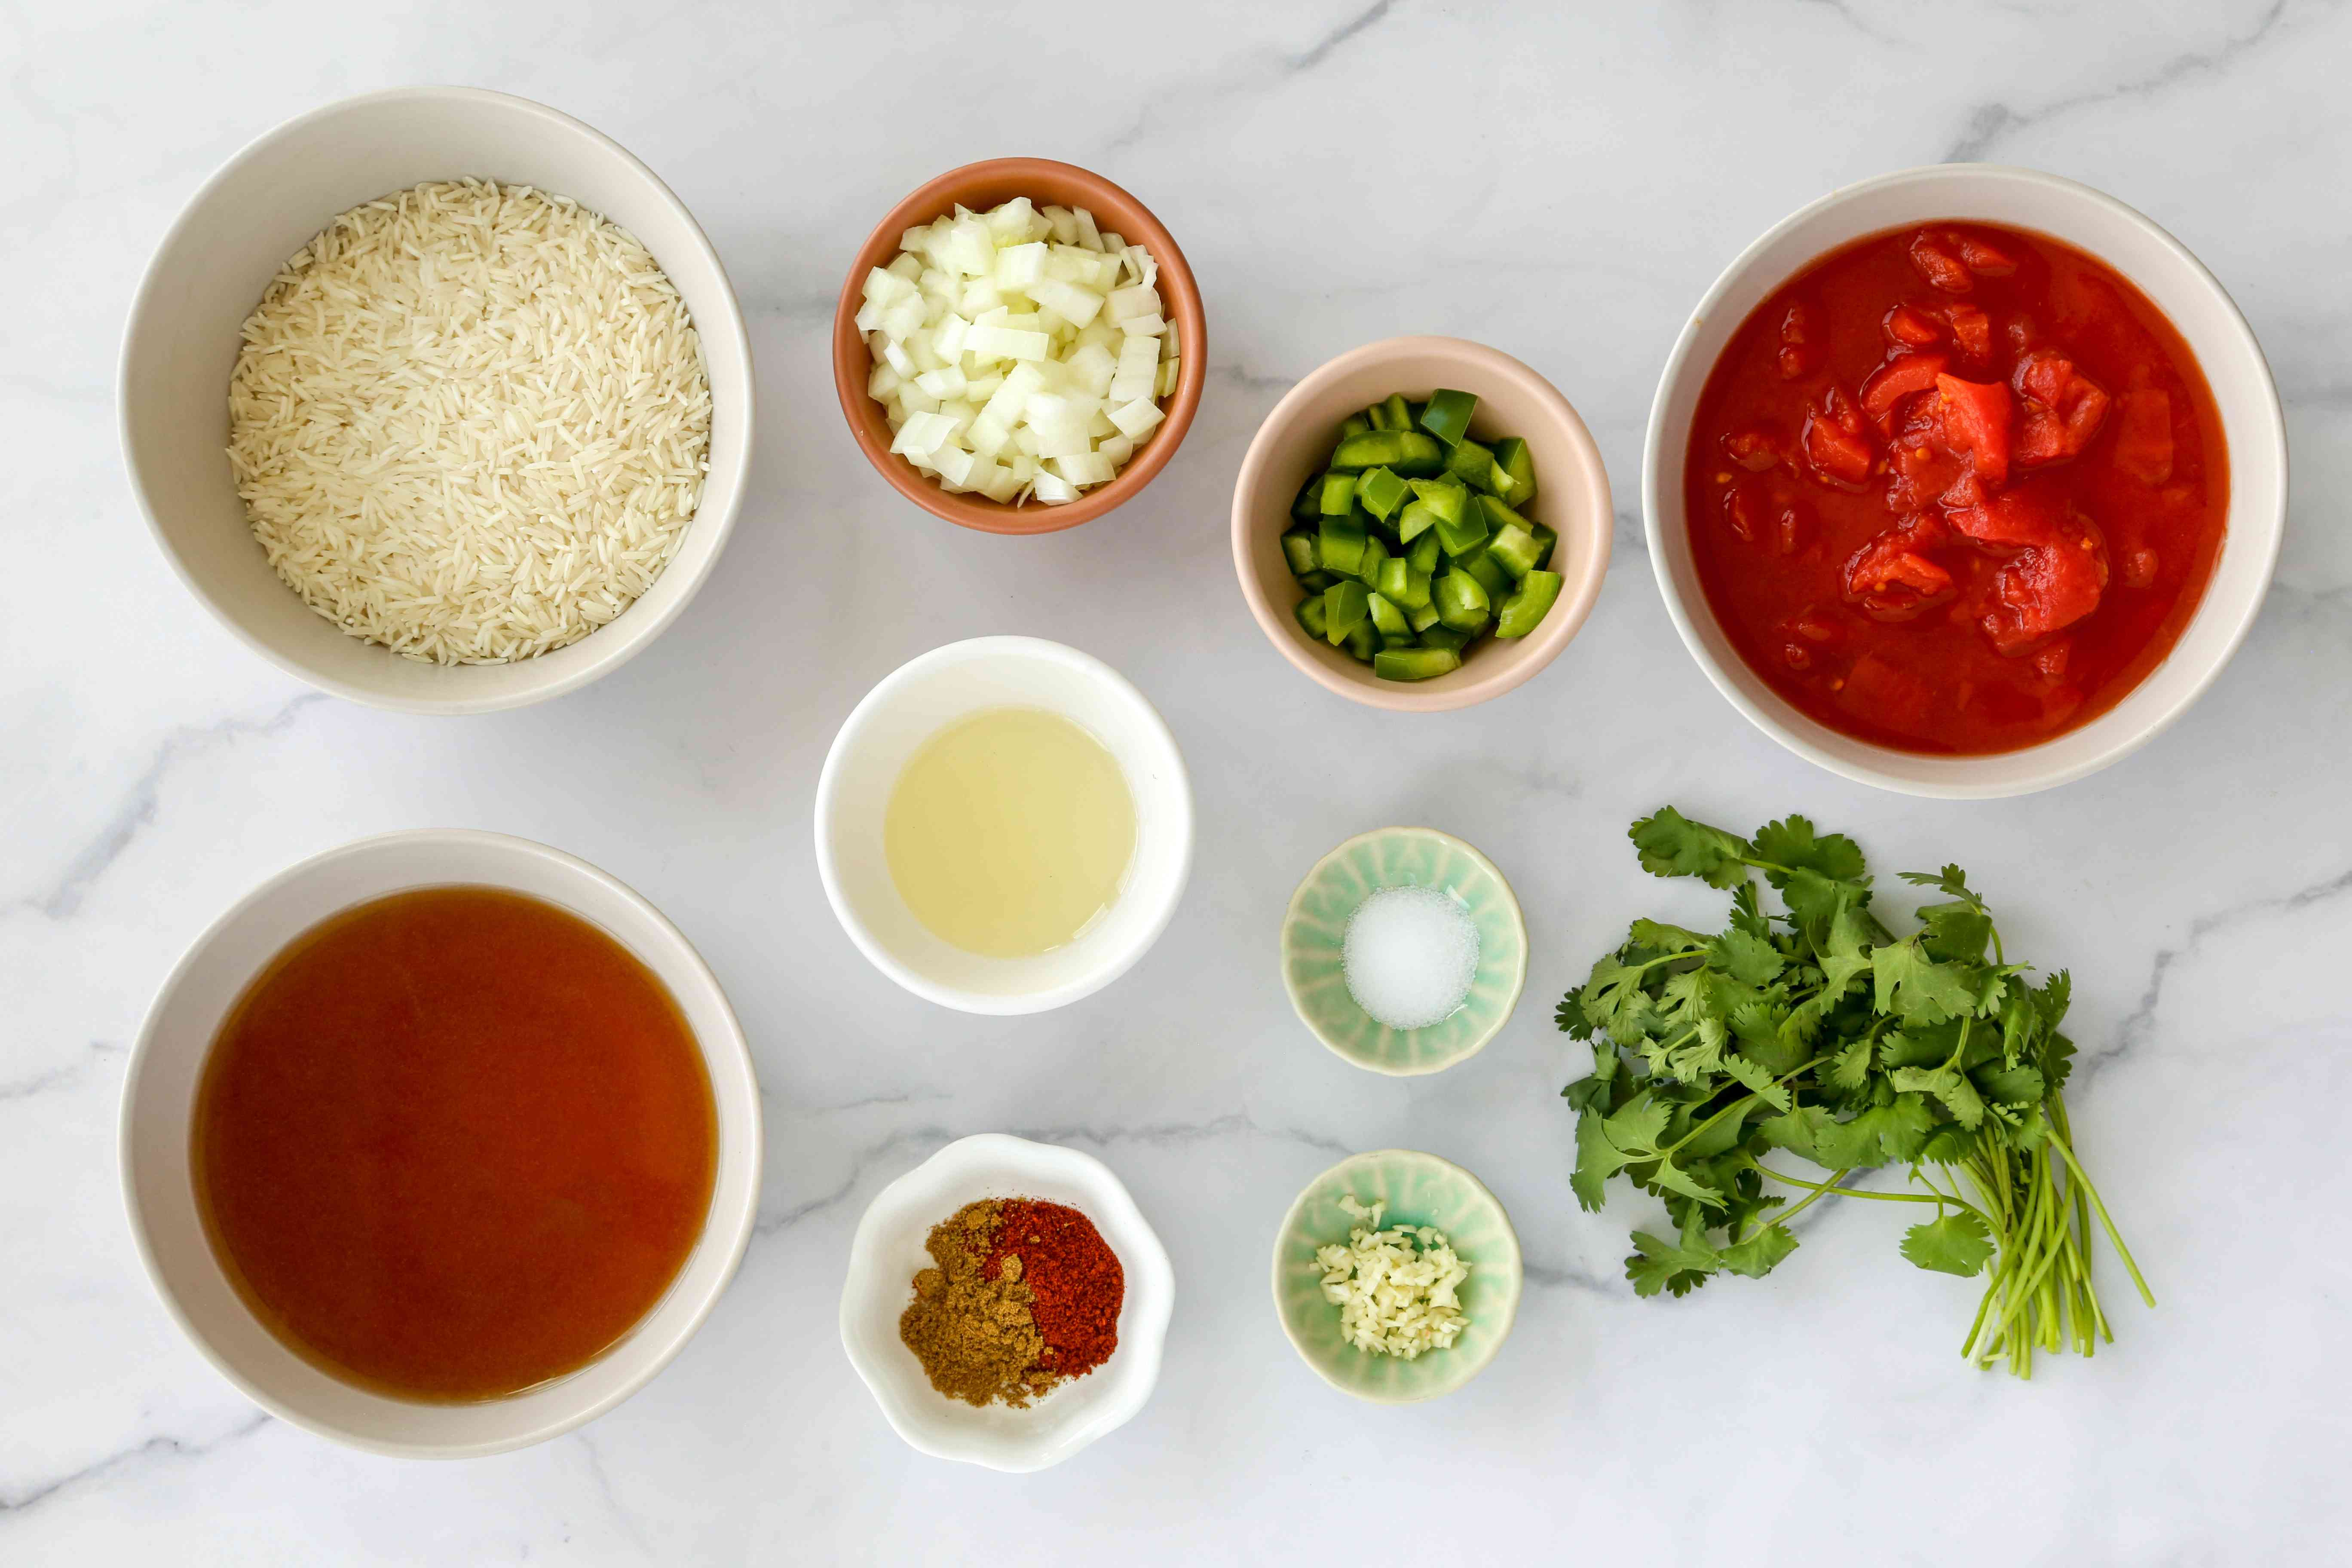 Classic Mexican Rice With Tomatoes and Peppers ingredients